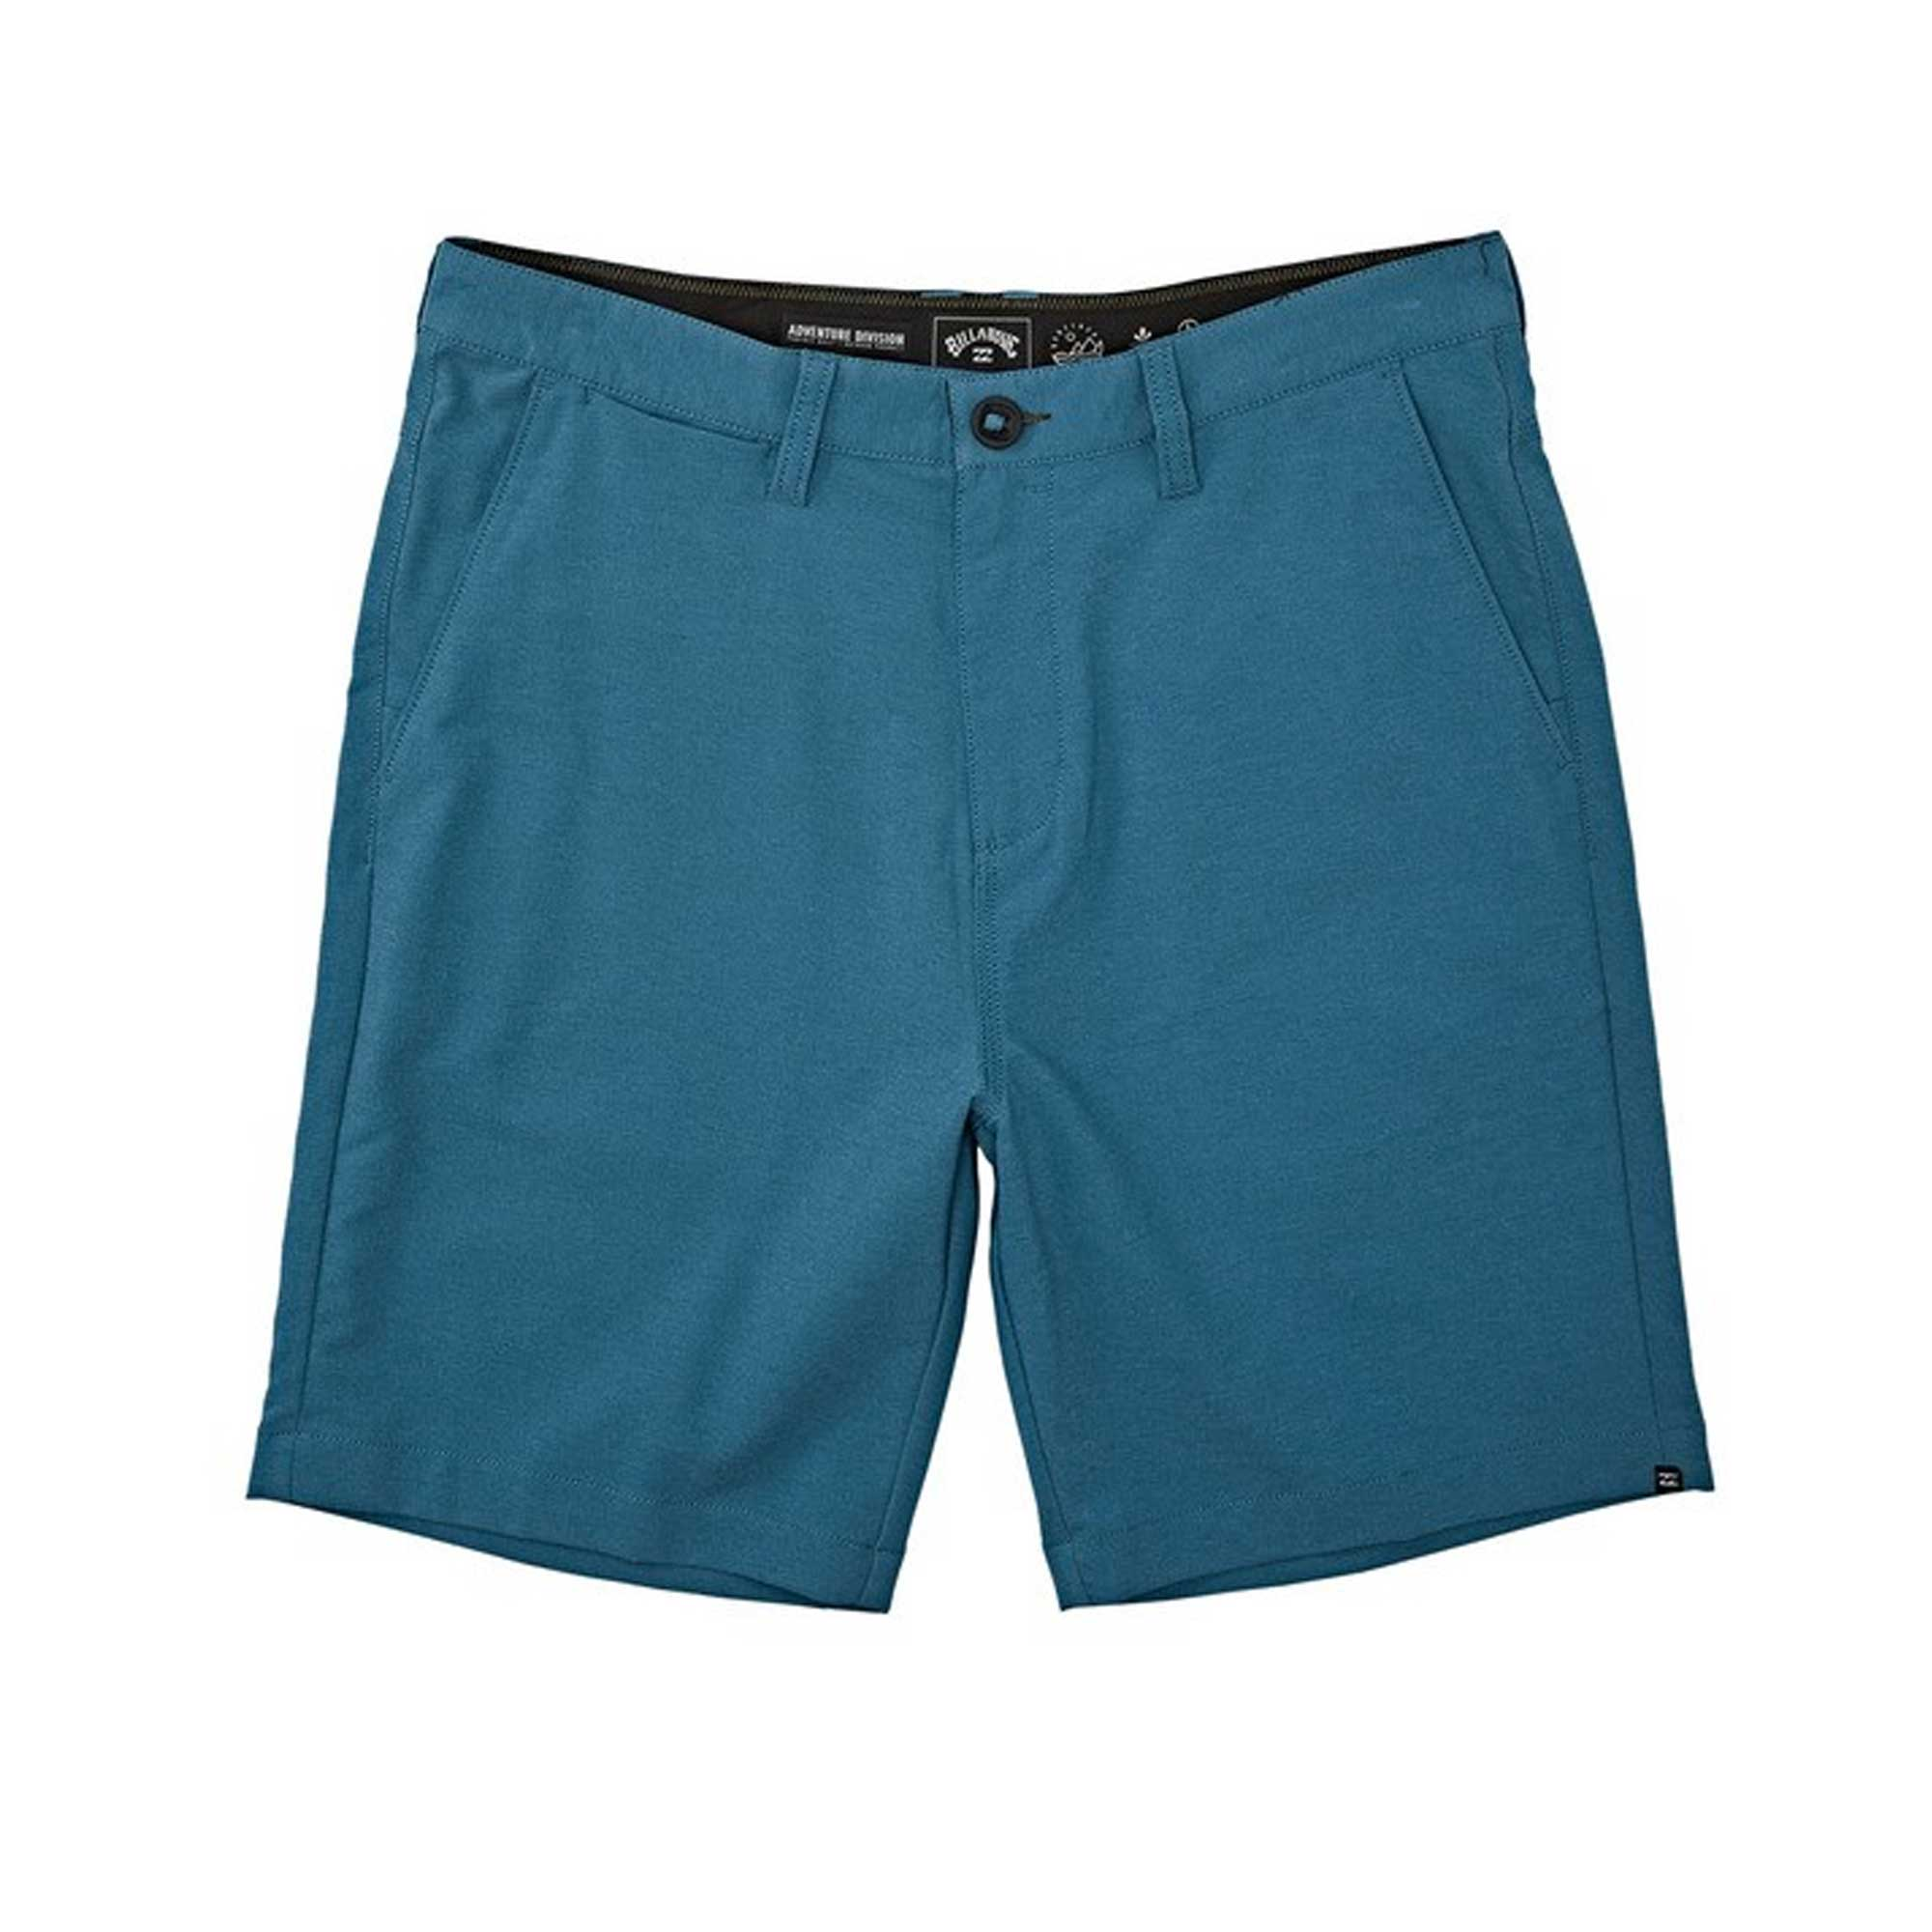 Billabong Men's Surftrek Wick Walkshorts - Pacific